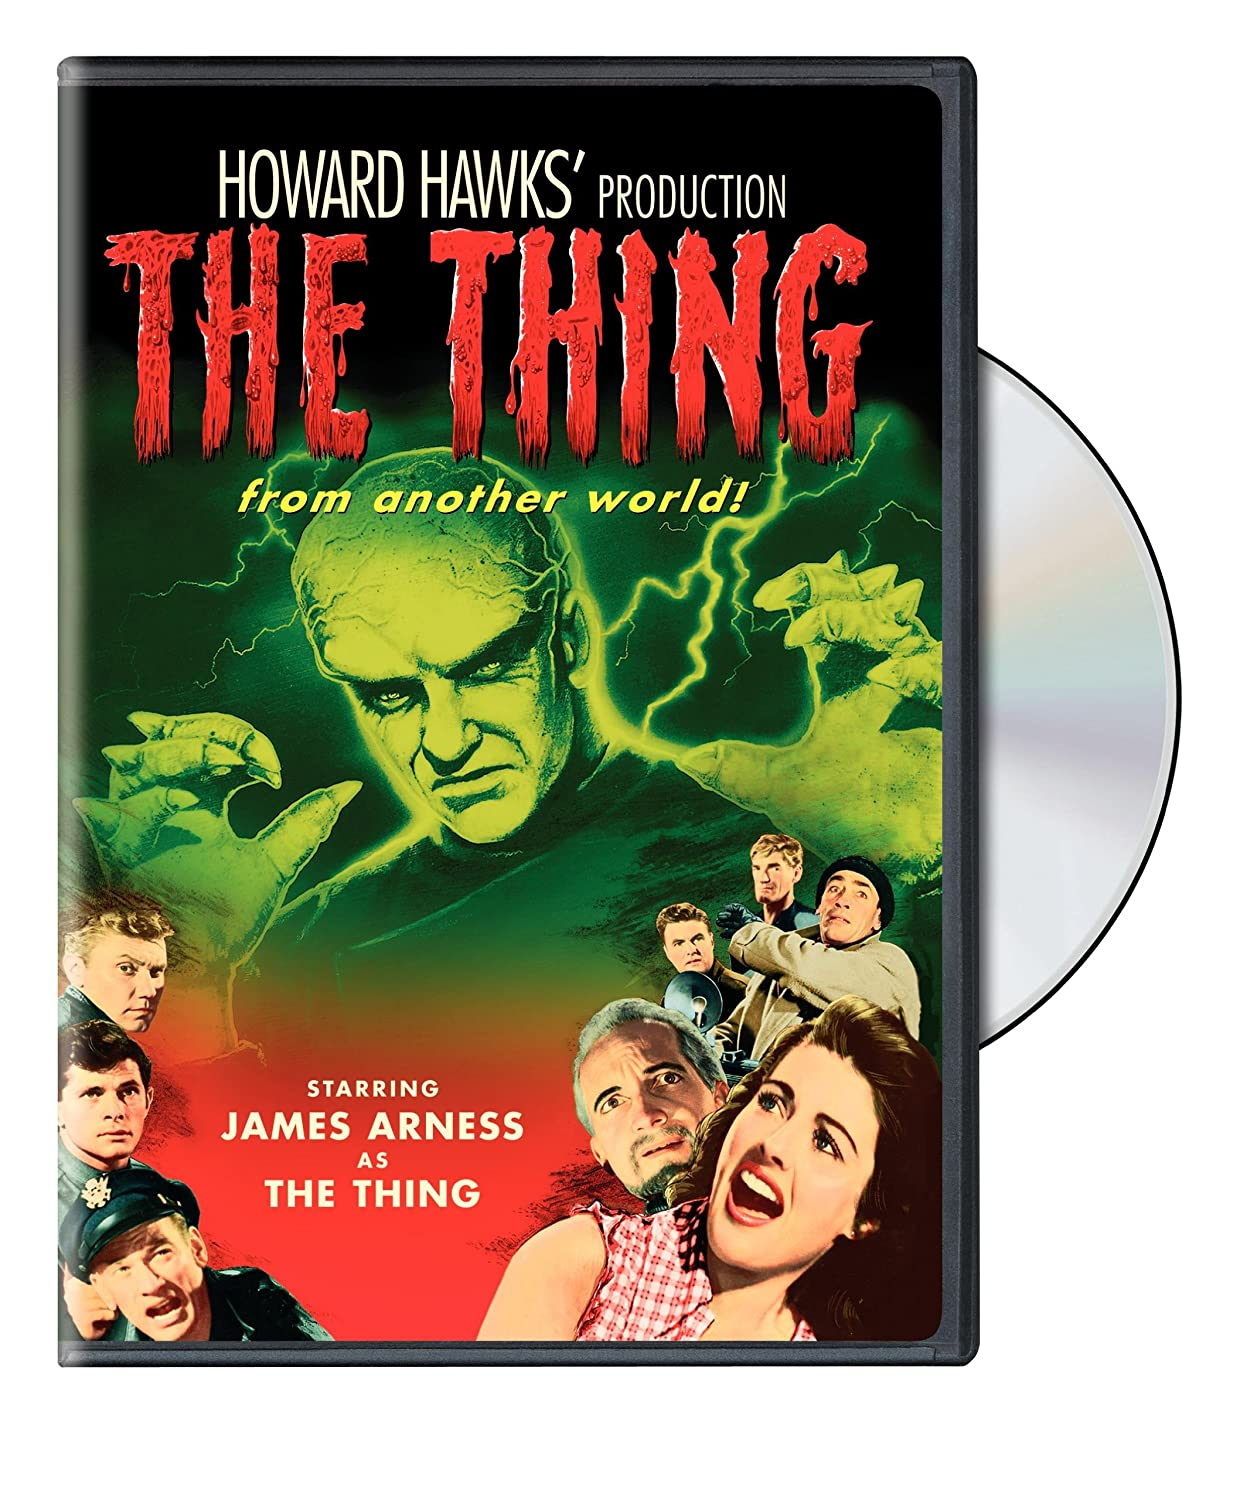 The Thing from Another World Christian Nyby Warner Bros. Home Video 2228602 Horror / Sci-Fi / Fantasy